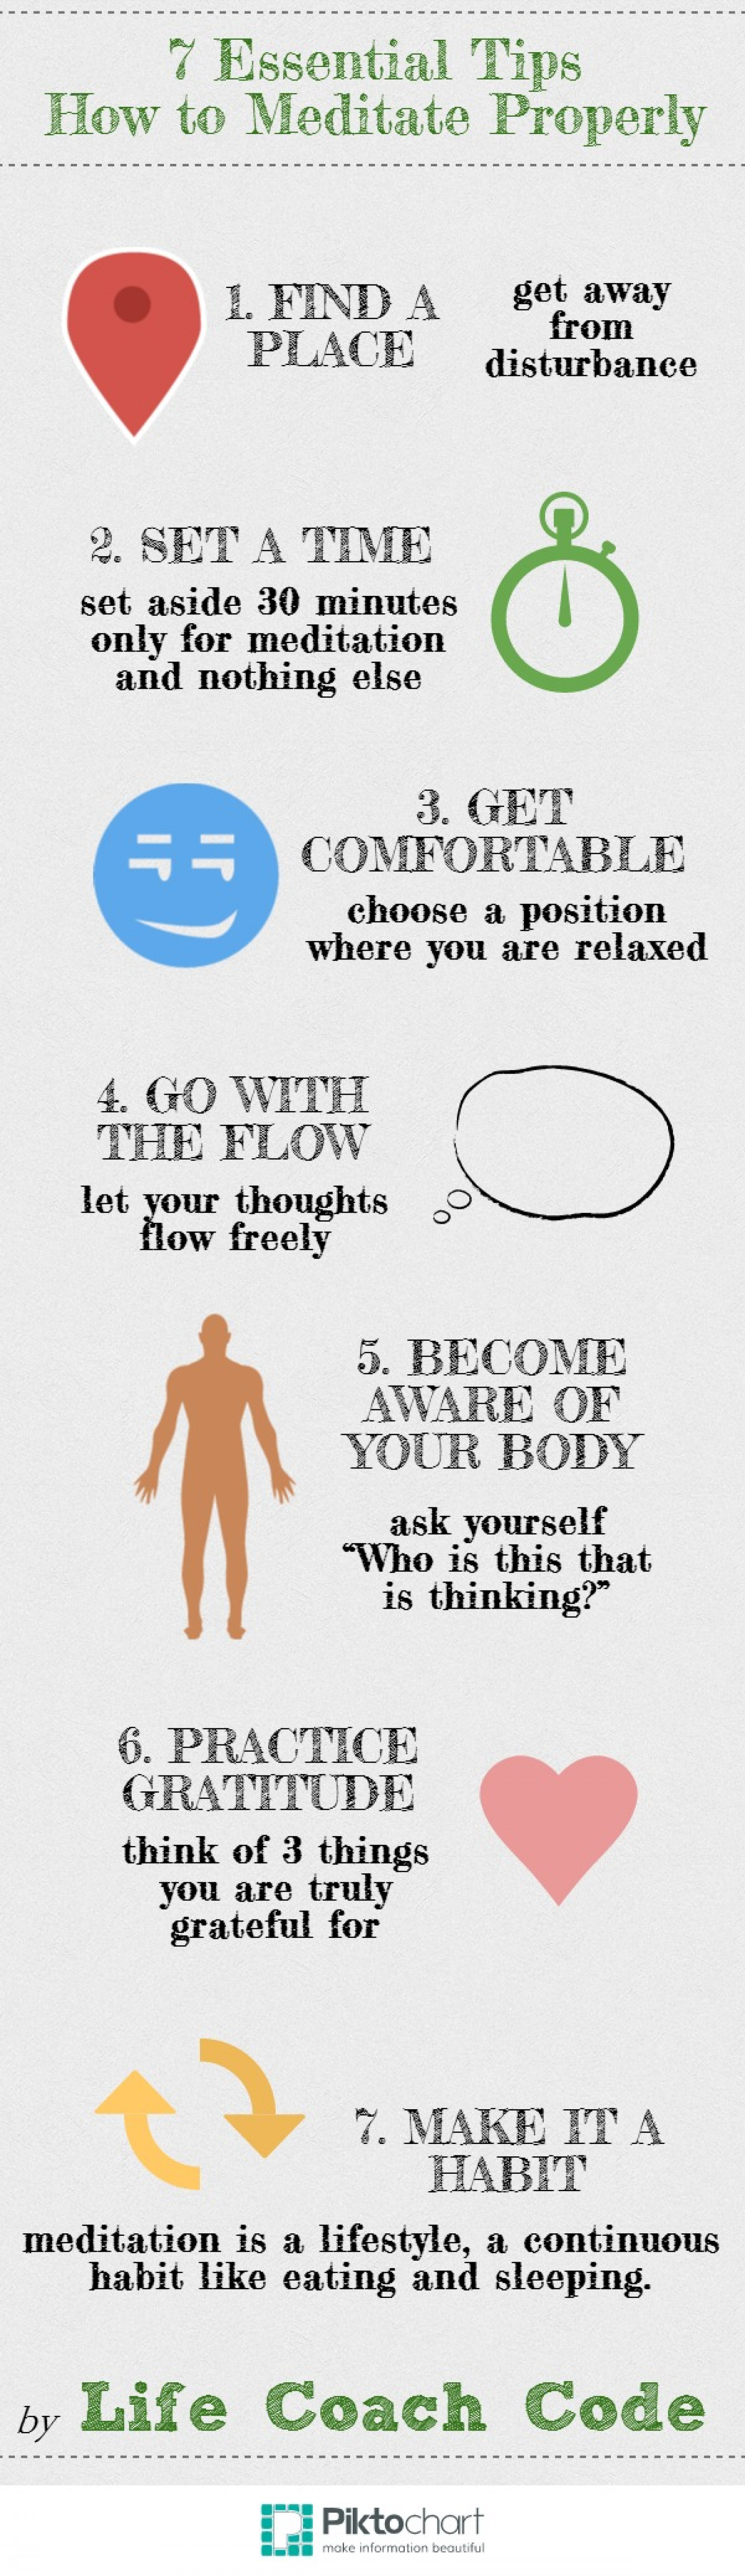 7 Essential Tips How to Meditate Properly | Visual.ly